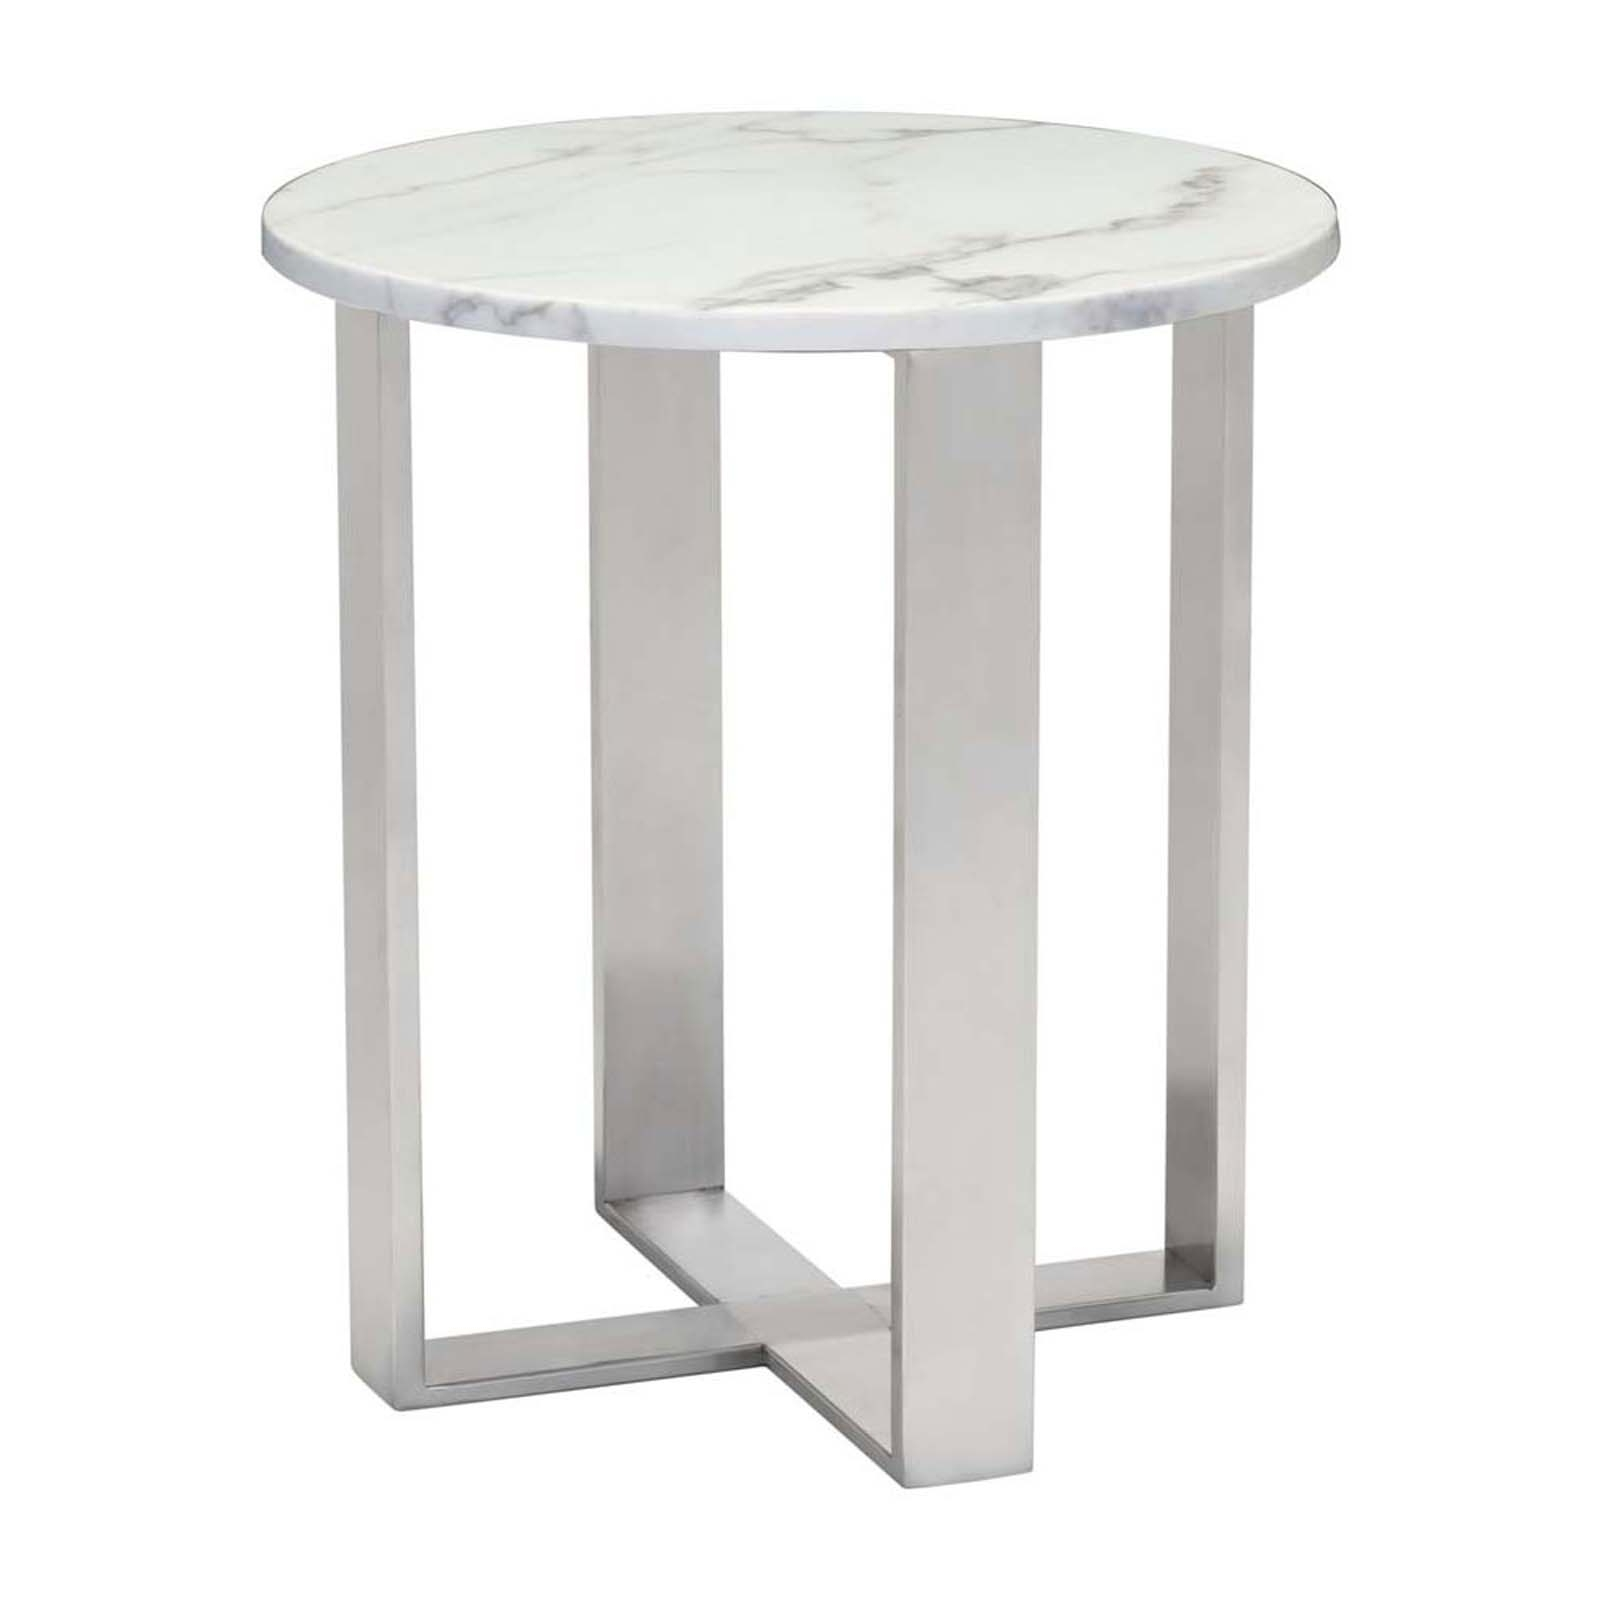 Side Tables Intended For Most Popular Broll Coffee Tables (View 12 of 20)